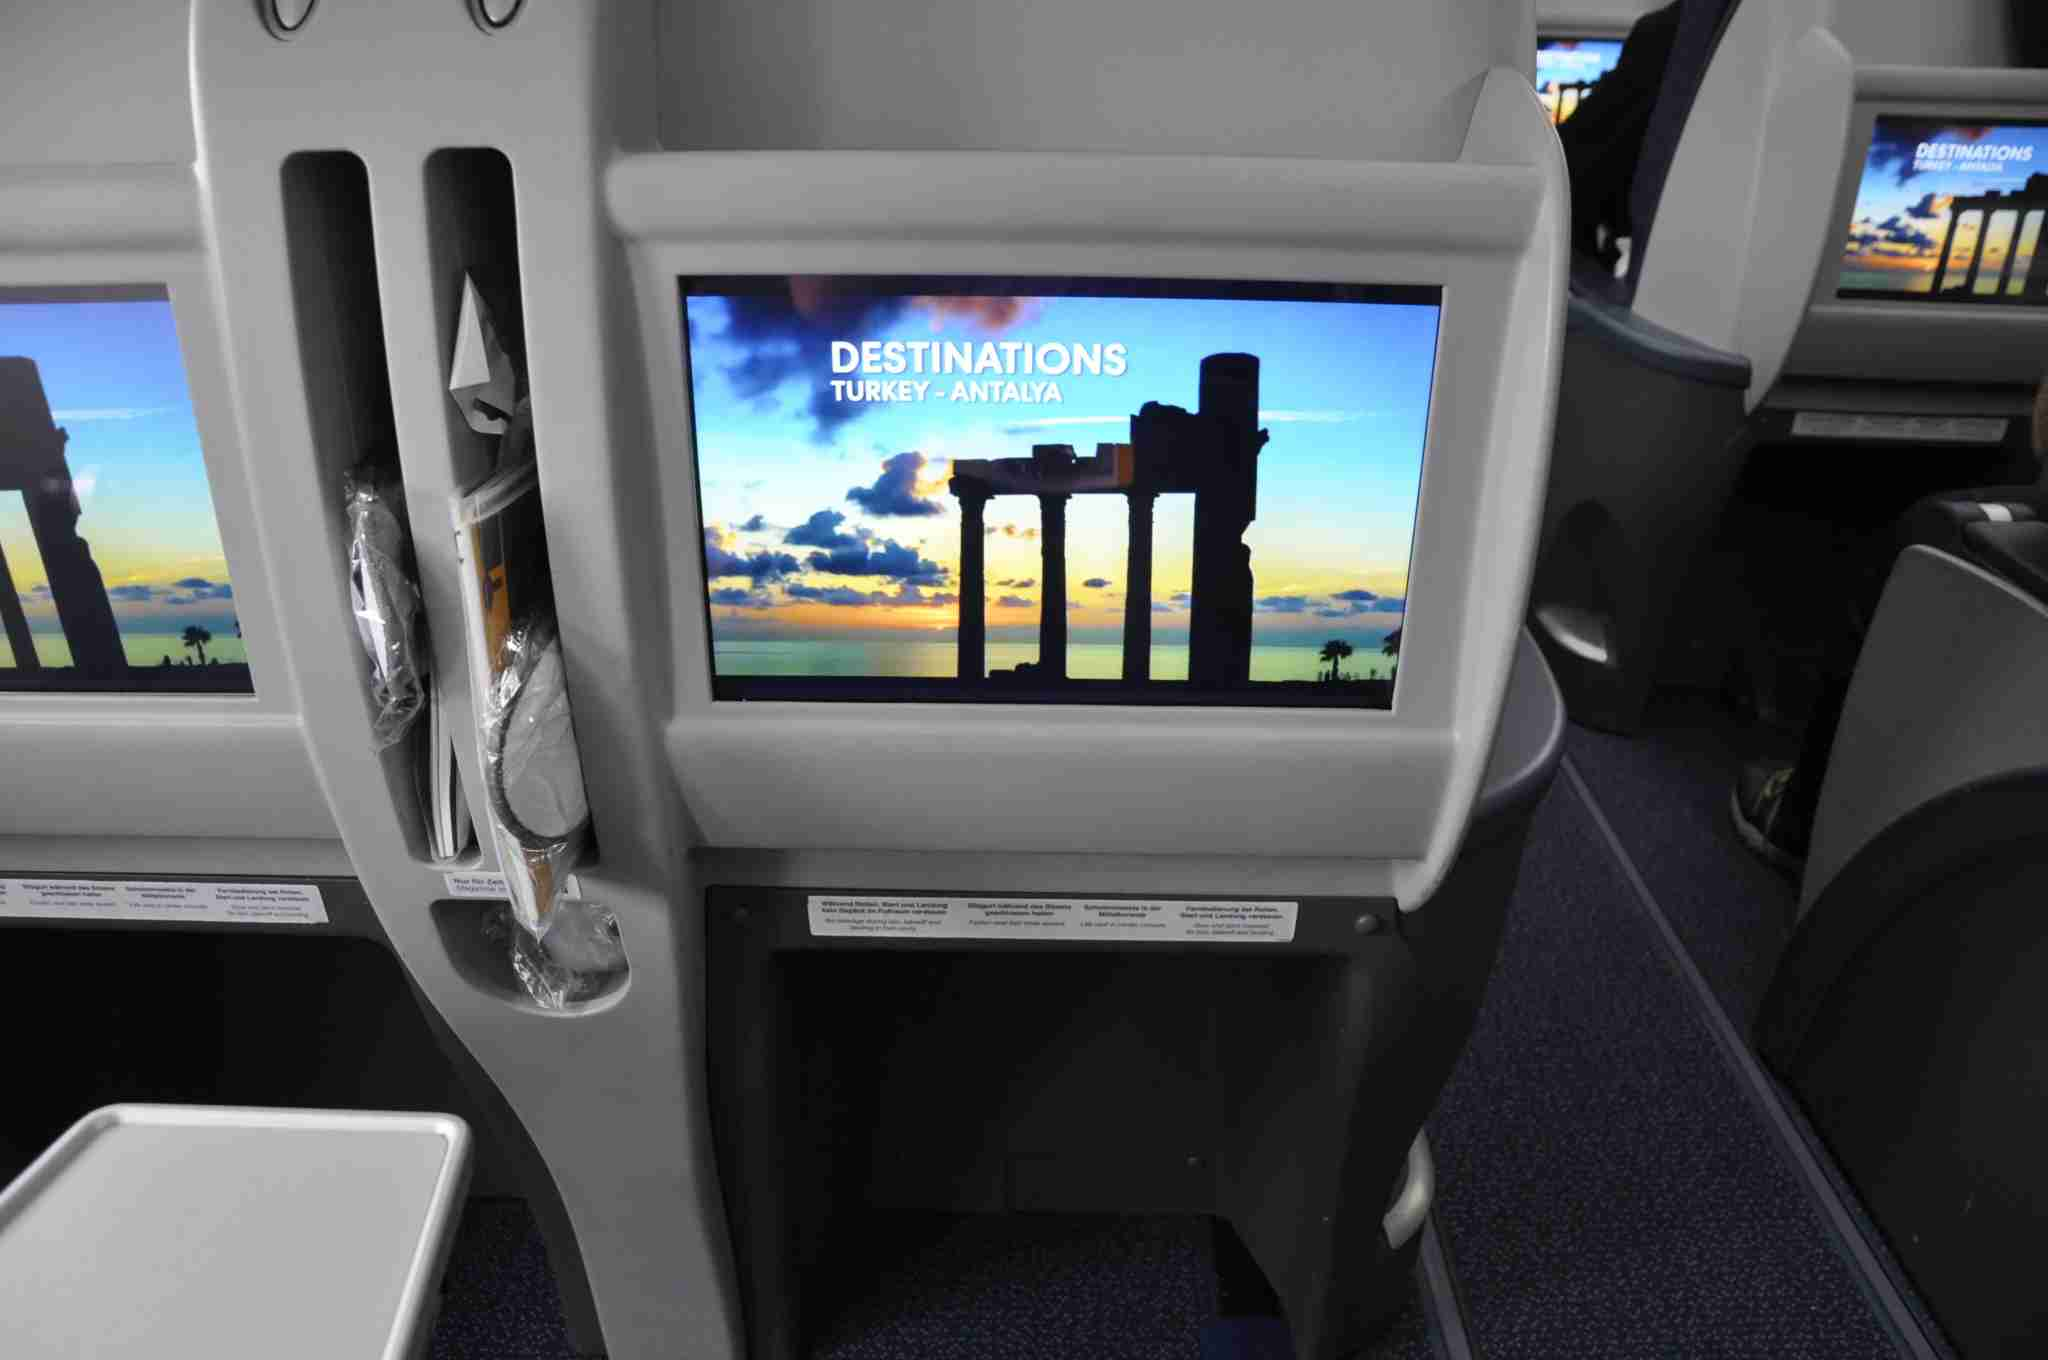 The 15-inch touchscreen monitors found in Business Class on Condor